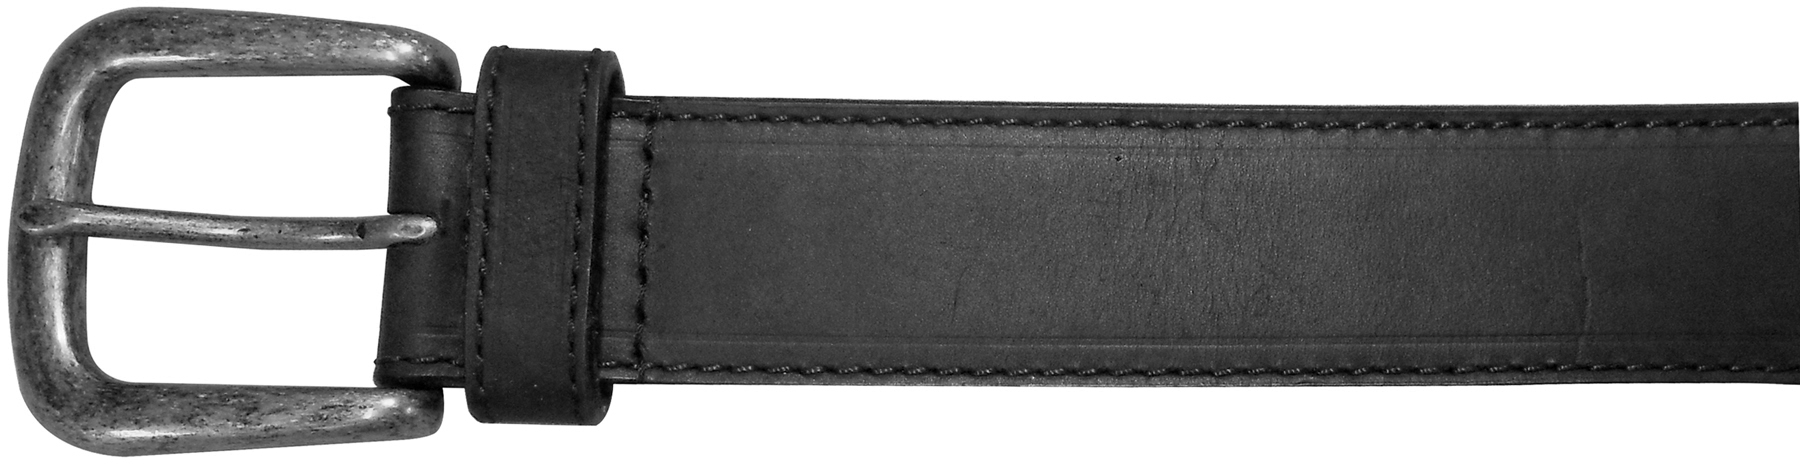 "10625410140 - 40"" Black Plain Field & Stream Leather Belt"